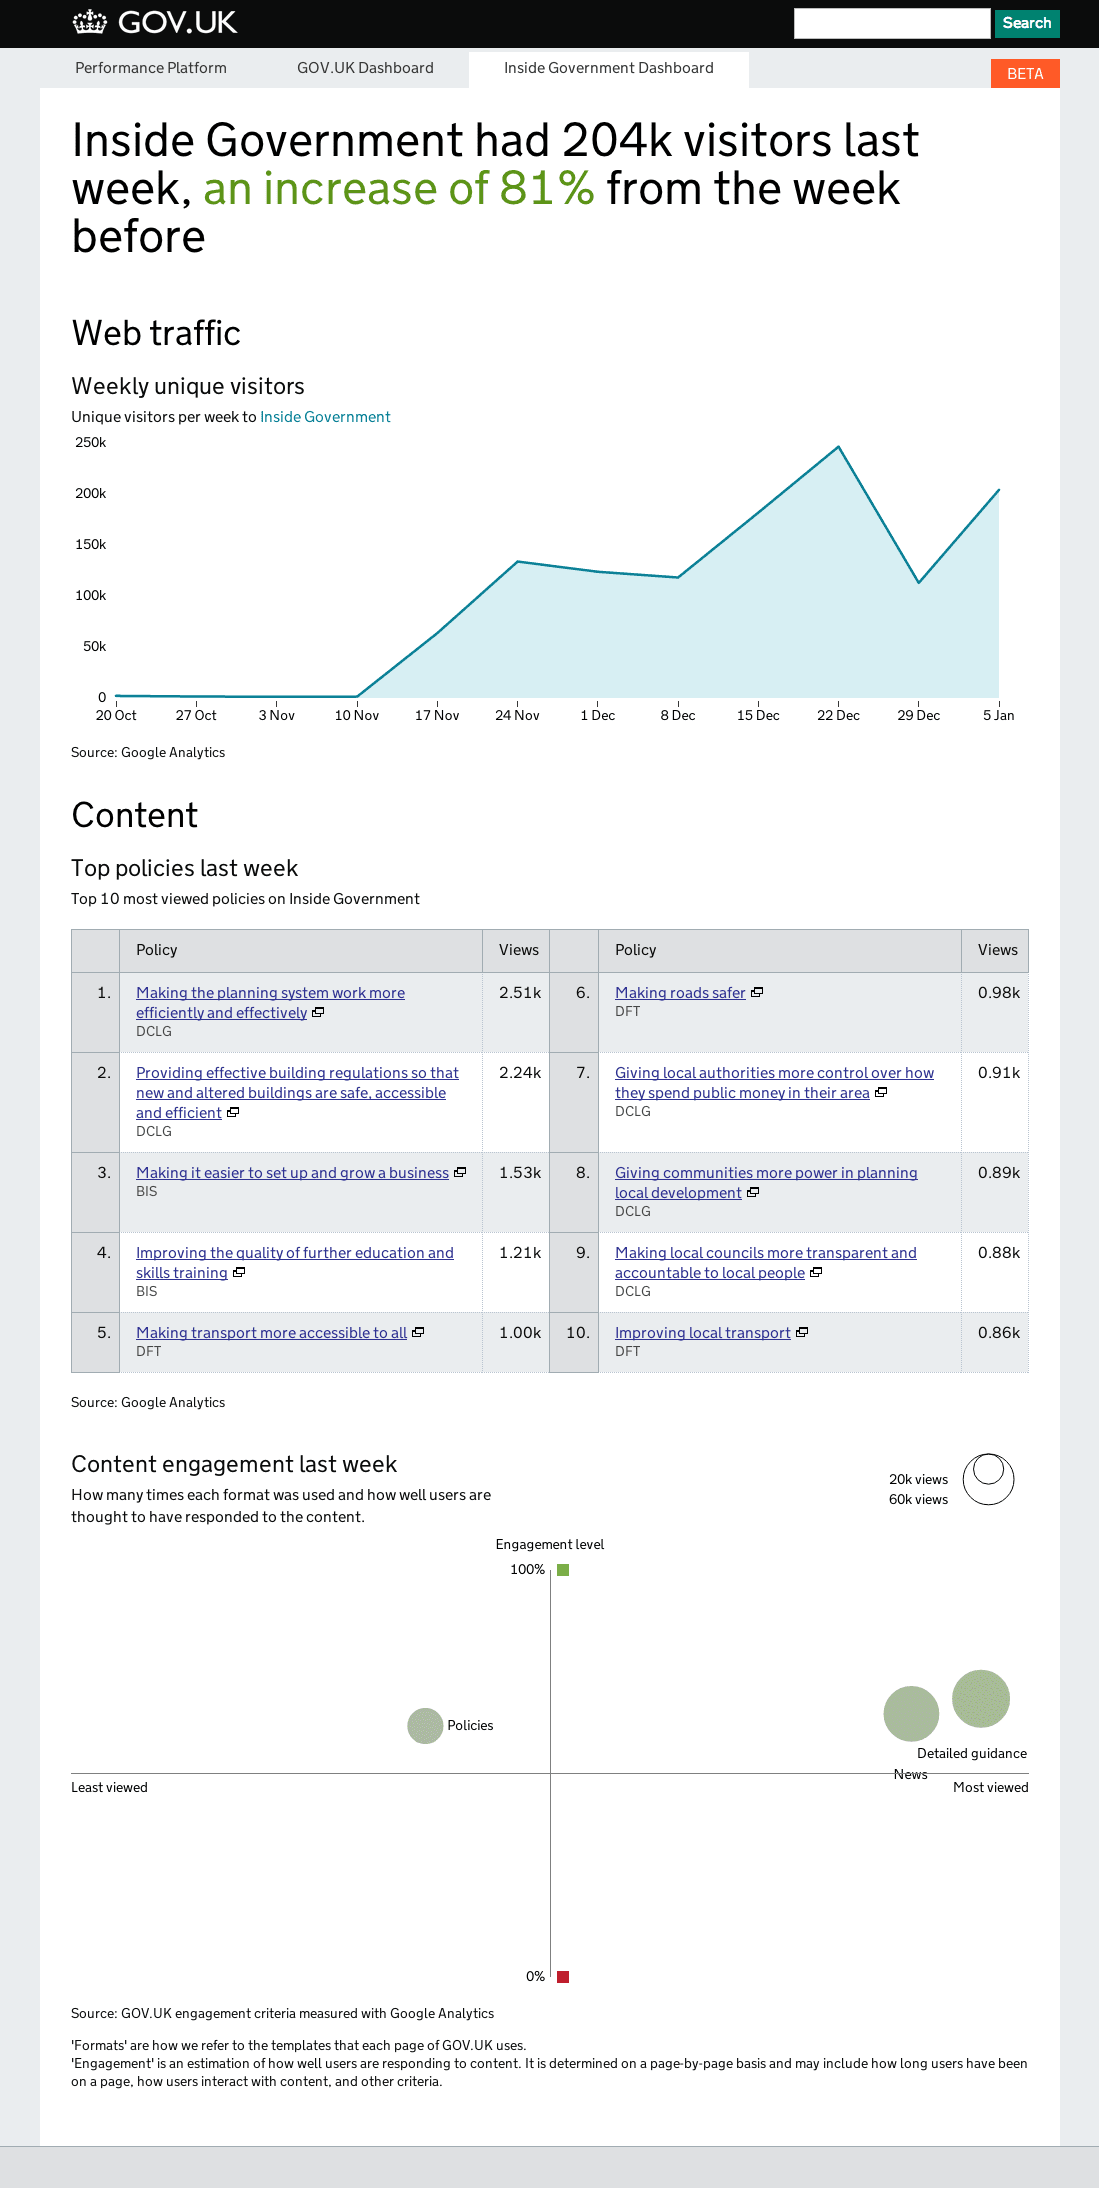 A screenshot of the Inside Government dashboard